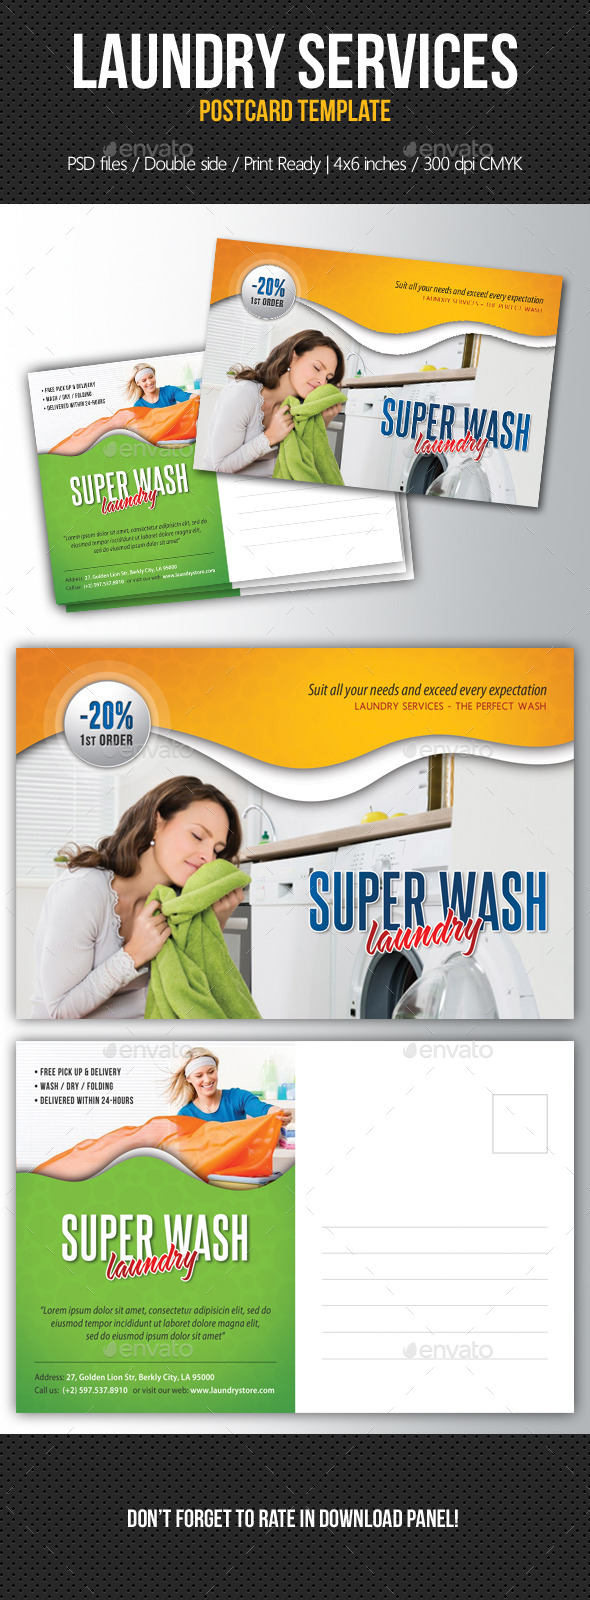 Laundry Services Postcard Template - Cards & Invites Print Templates